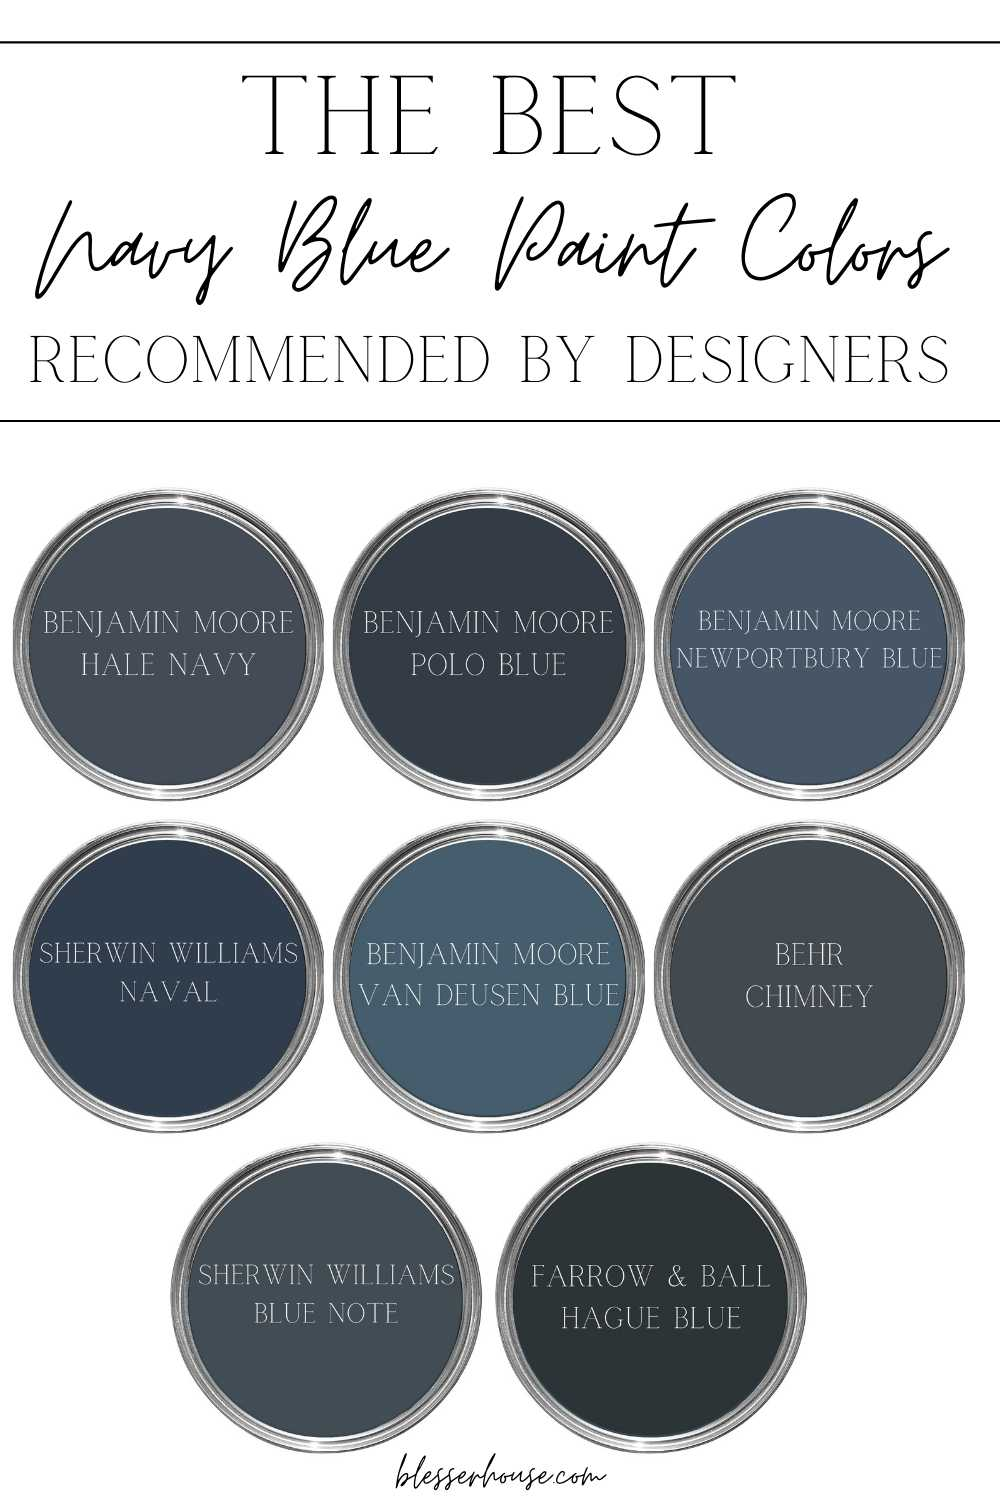 The best navy blue paint recommended by designers